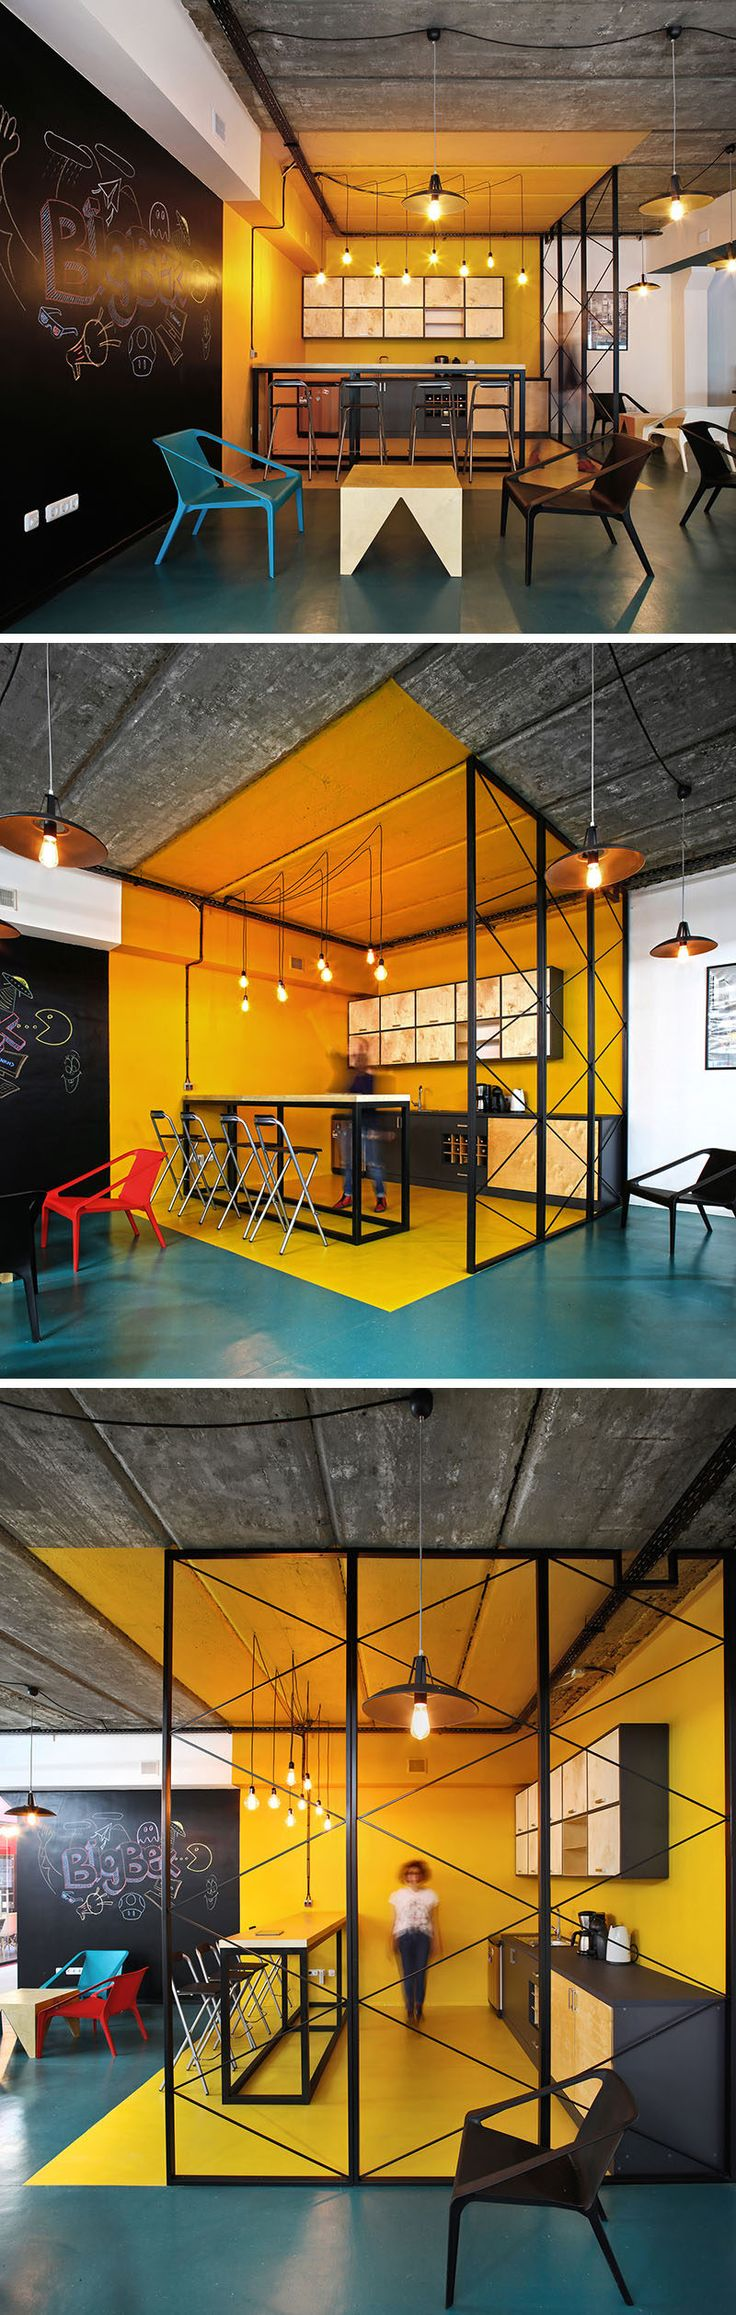 Best 25 Office designs ideas on Pinterest Office ideas Offices